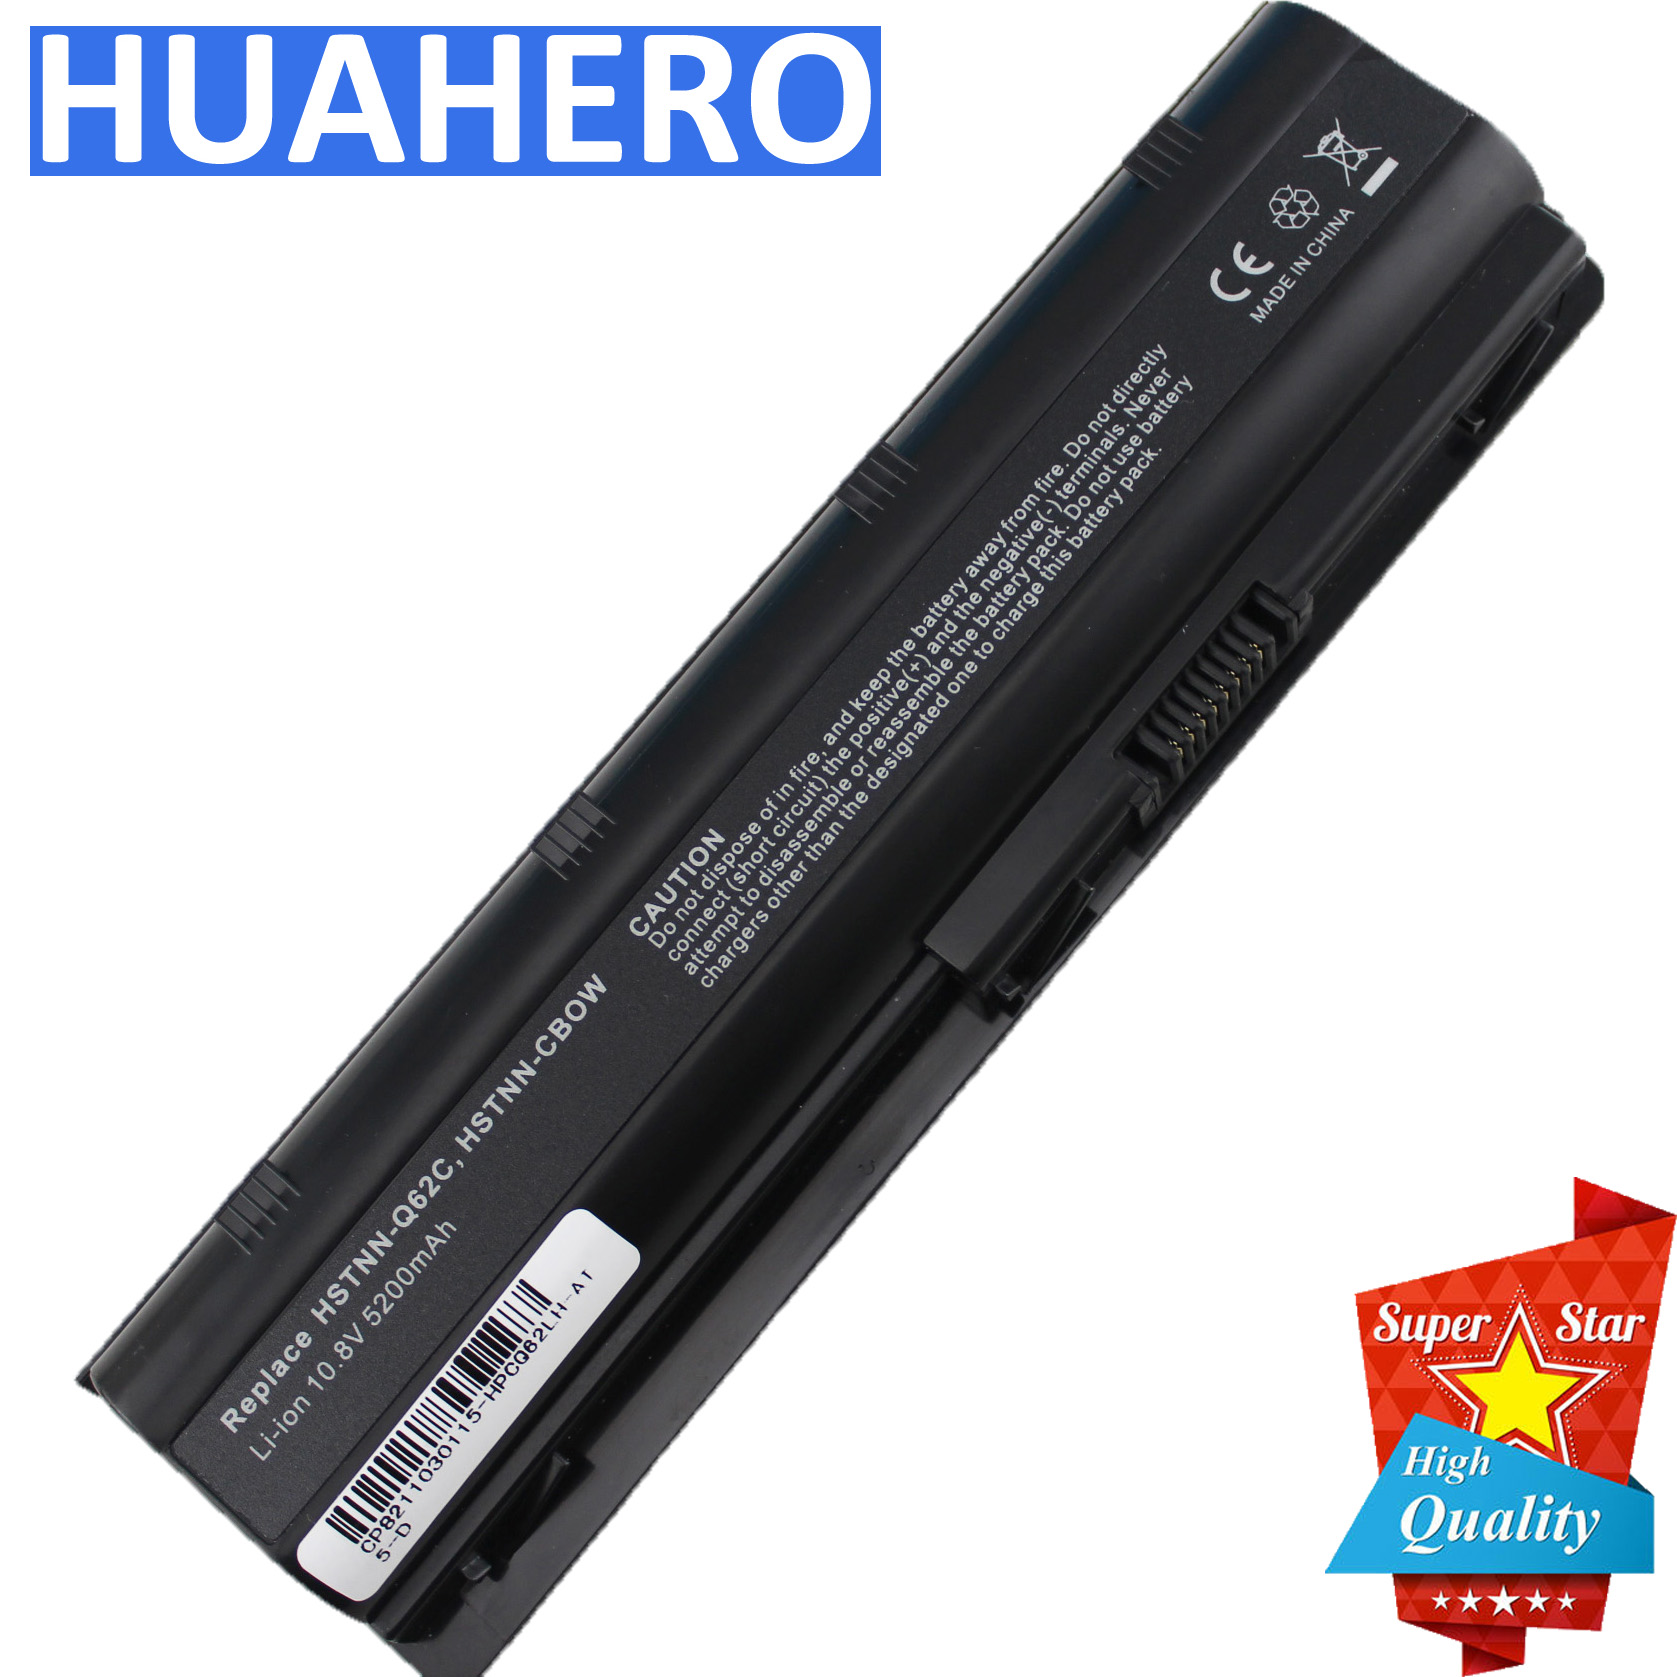 MU06 593553-001 Battery for HP 2000-425NR Notebook CQ32 CQ42 CQ56 CQ62 CQ72 G32 G42 G56 G62 DM4 G72 Laptop CQ43 MU09 593554-001 image